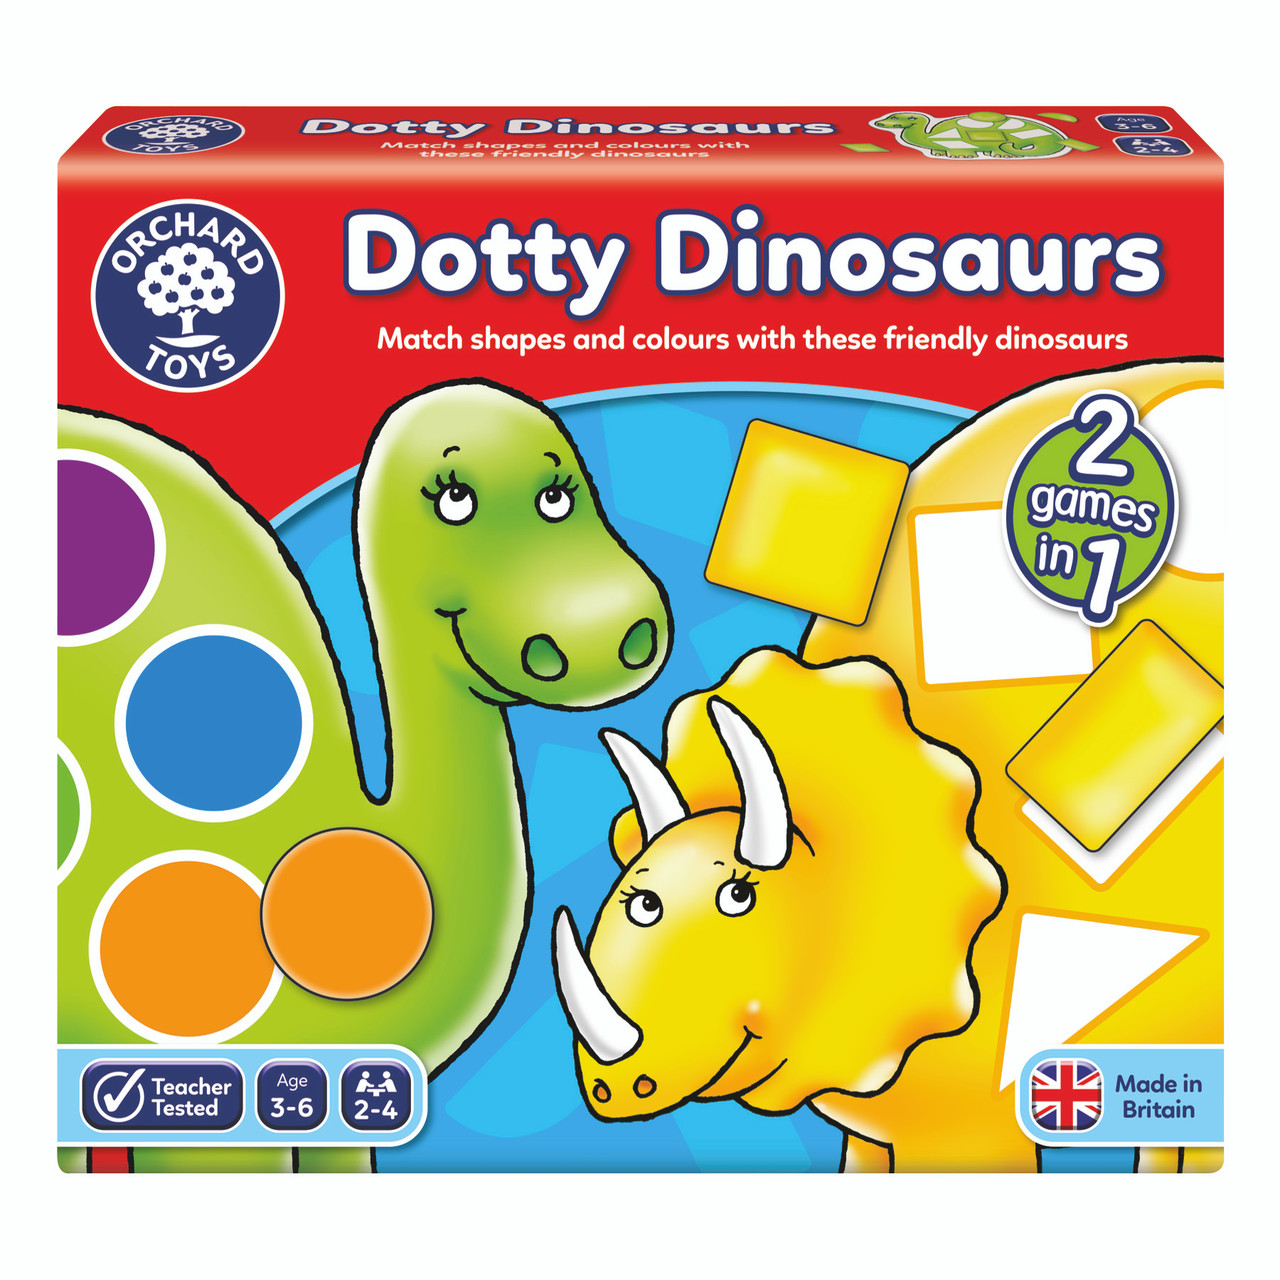 https://d3d71ba2asa5oz.cloudfront.net/62000975/images/062%20dotty%20dinosaurs%20packshot%20print.jpg